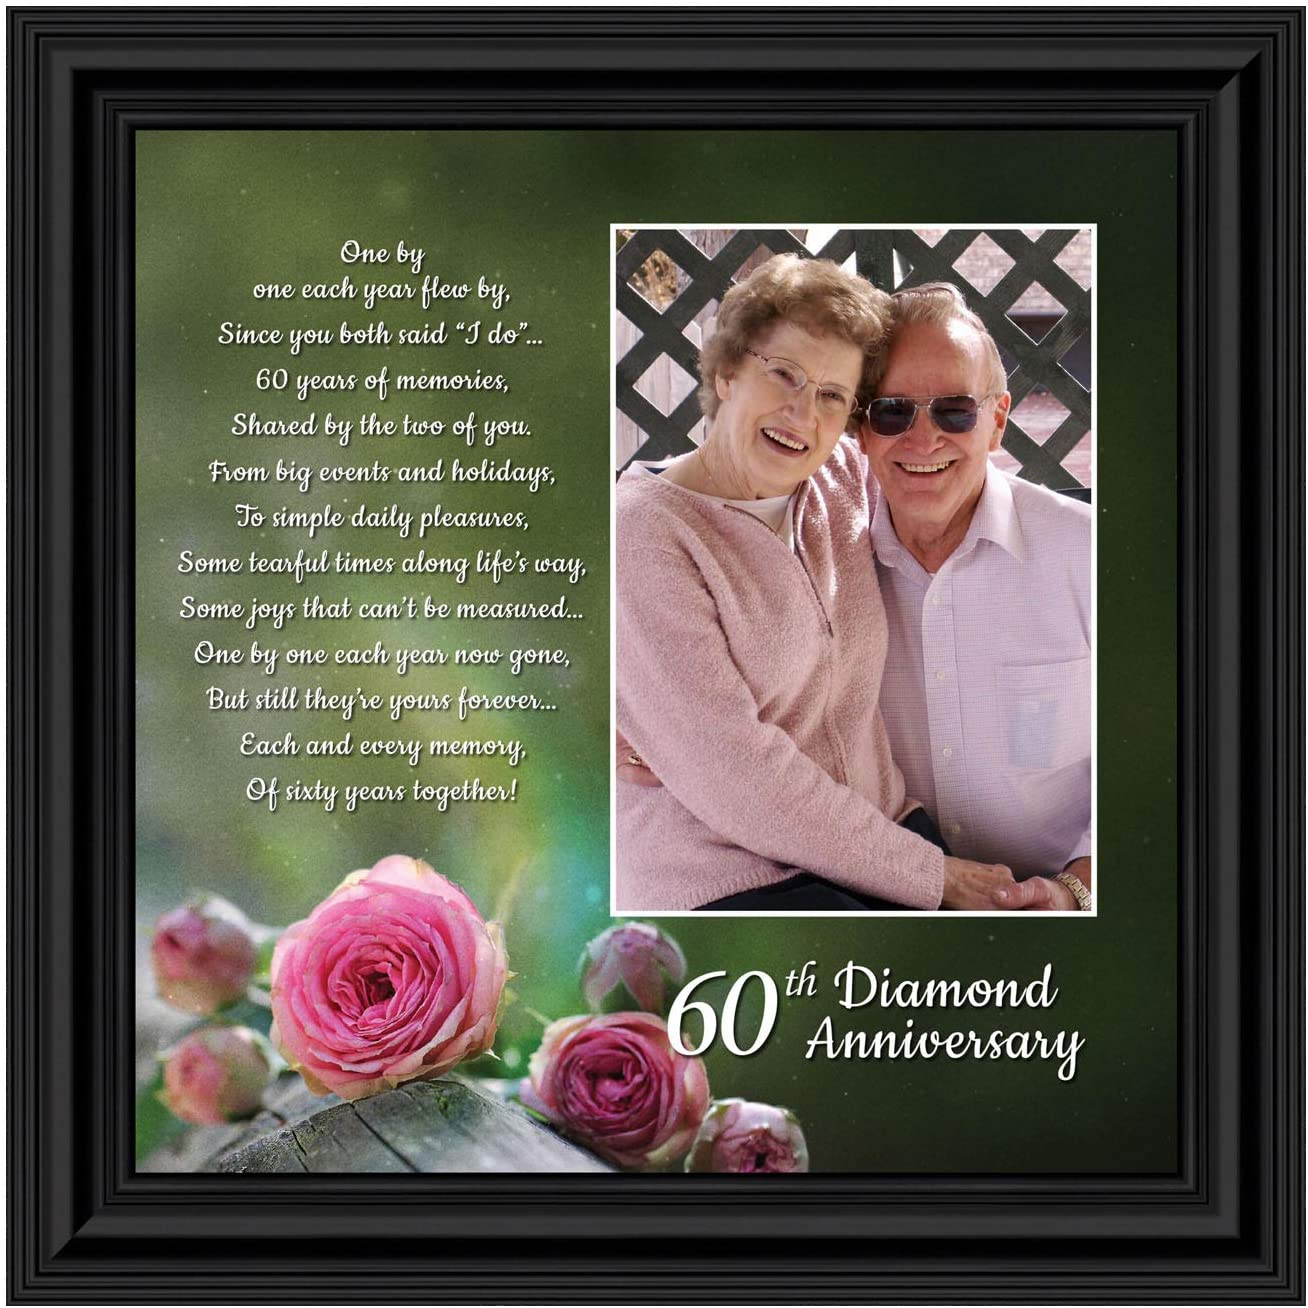 Crossroads Home Décor 60th, Diamond 60th Wedding Anniversary Grandparents Gifts, for Grandparents, 60th Anniversary Card for Parents, Picture Frame for Couples, 6310B